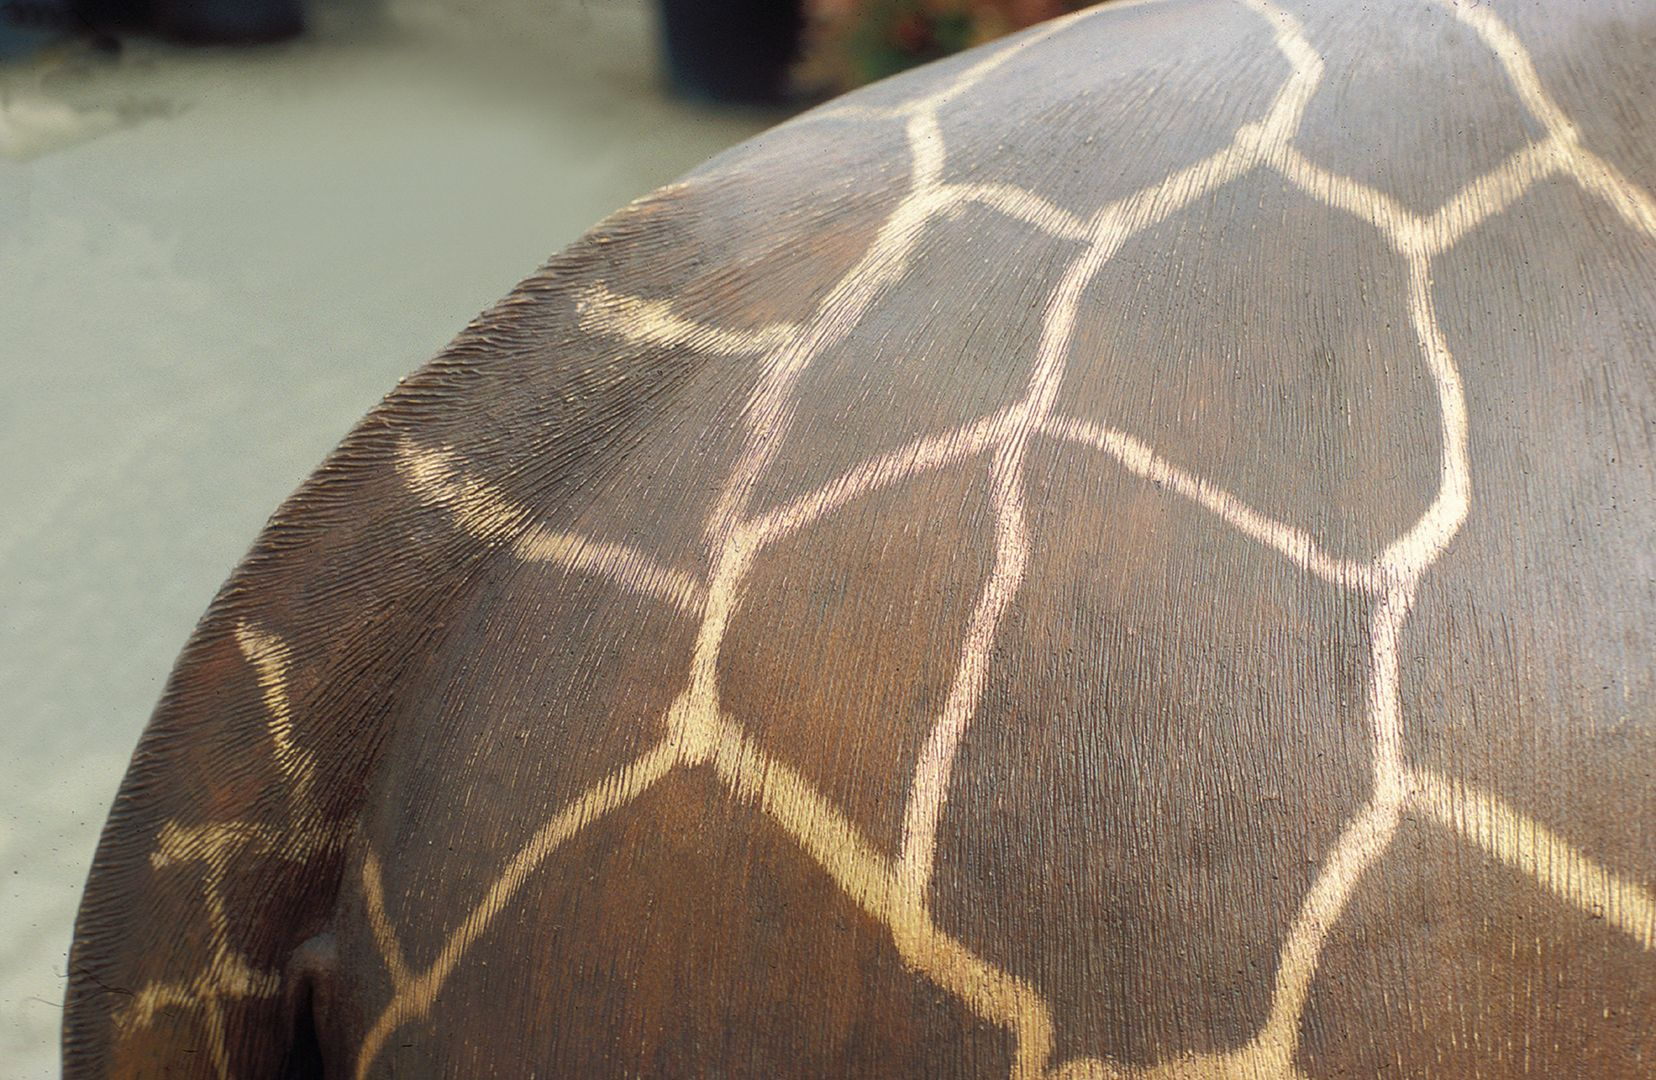 Reticulated giraffe Back and tail, detail